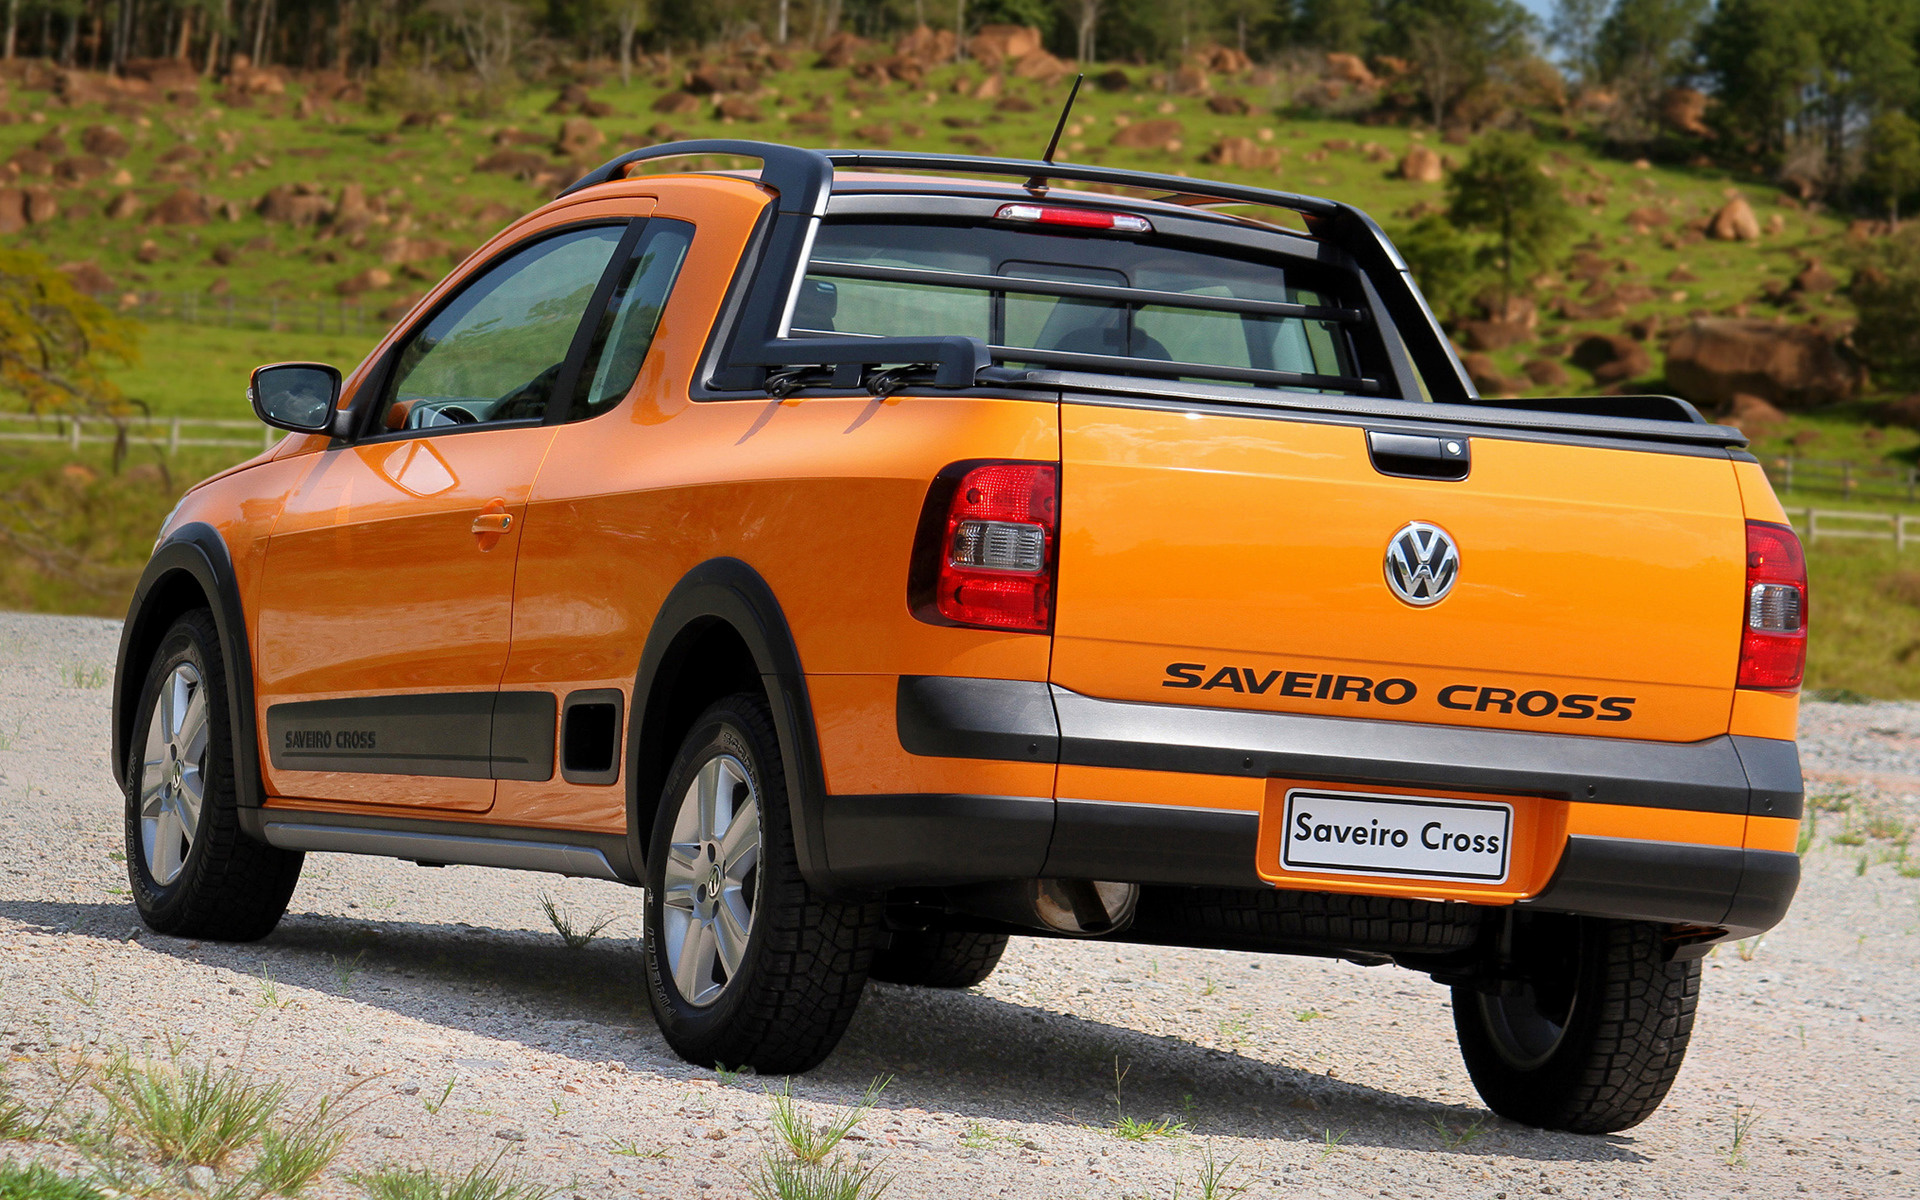 2010 Volkswagen Saveiro Cross CE   Wallpapers and HD Images Car 1920x1200